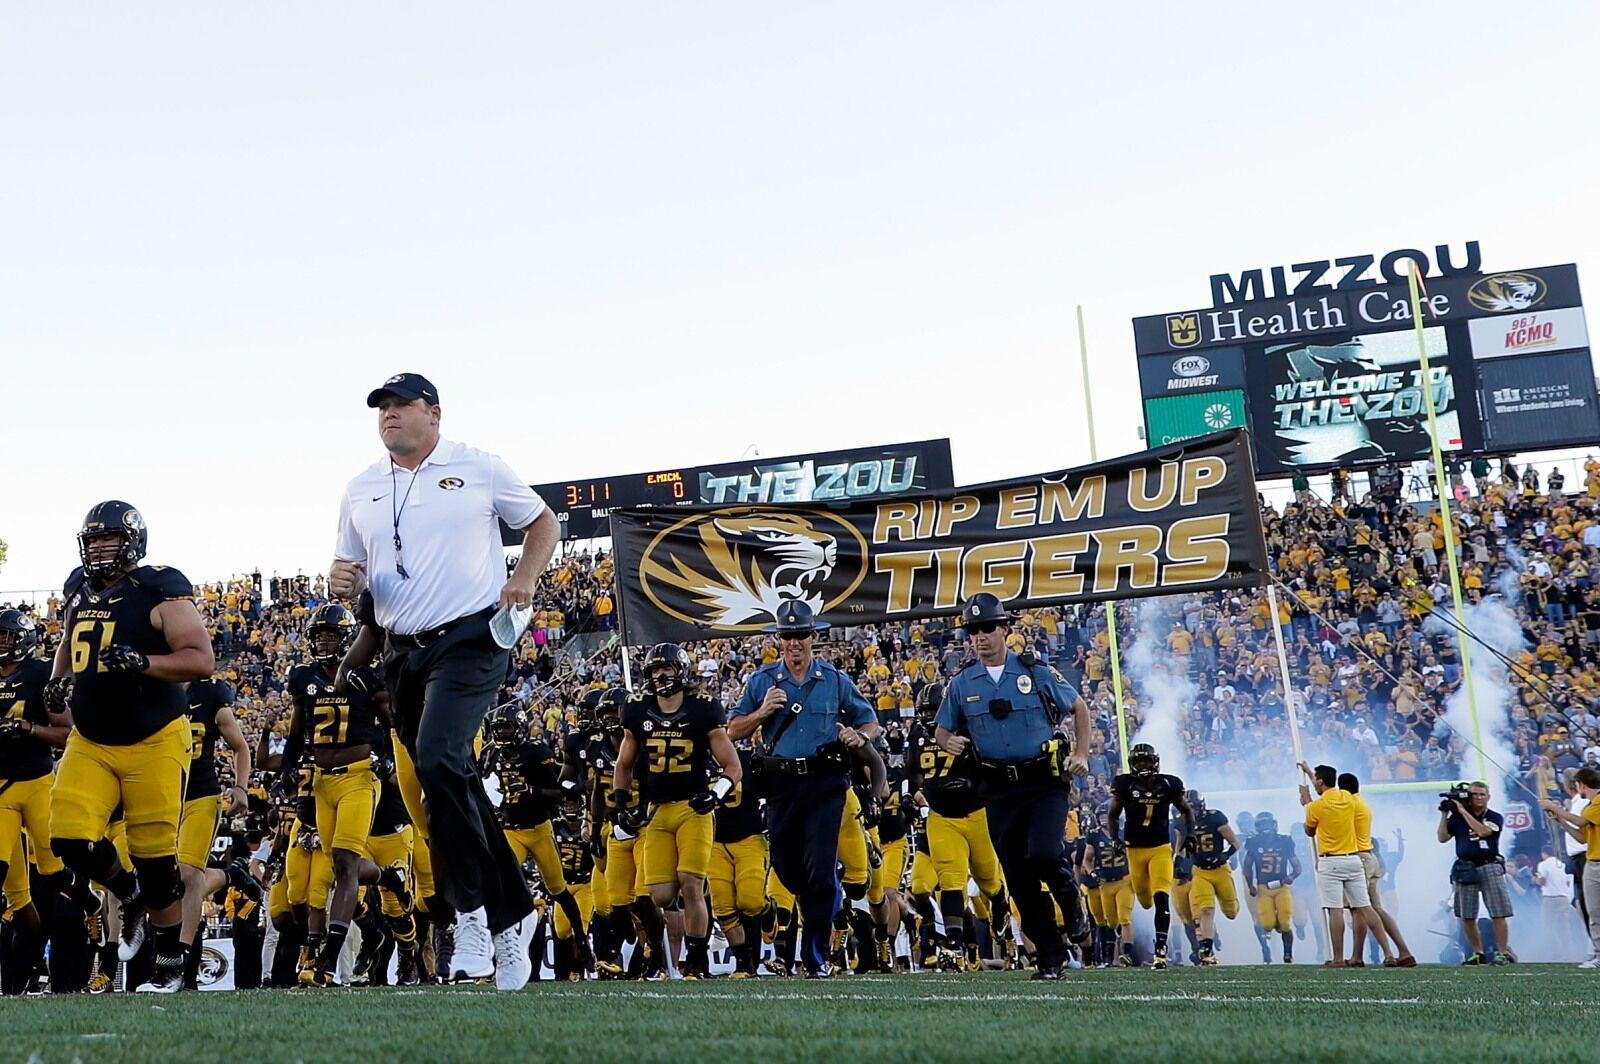 Missouri Football: Top 10 potential candidates to replace Barry Odom